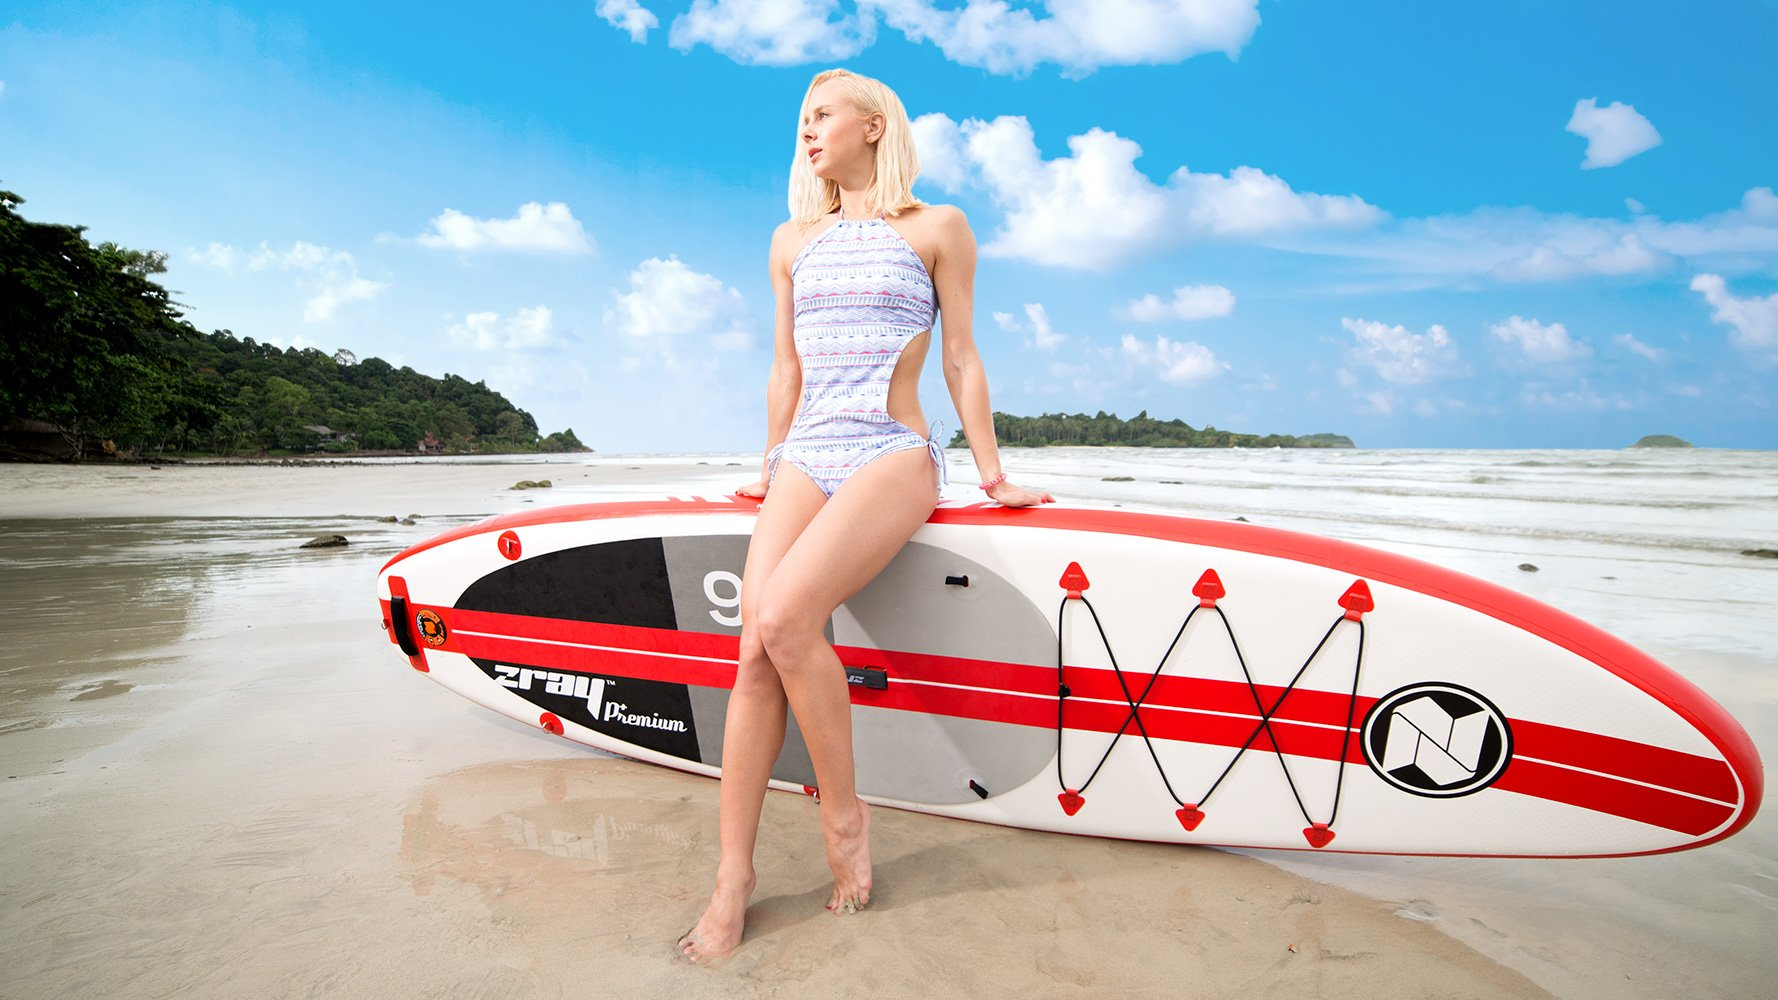 Zray Paddle Board 9'10'' Inflatable SUP Package (Board, Pump, Paddle and Backpack bag), 6'' Thickness by Zray (Image #8)